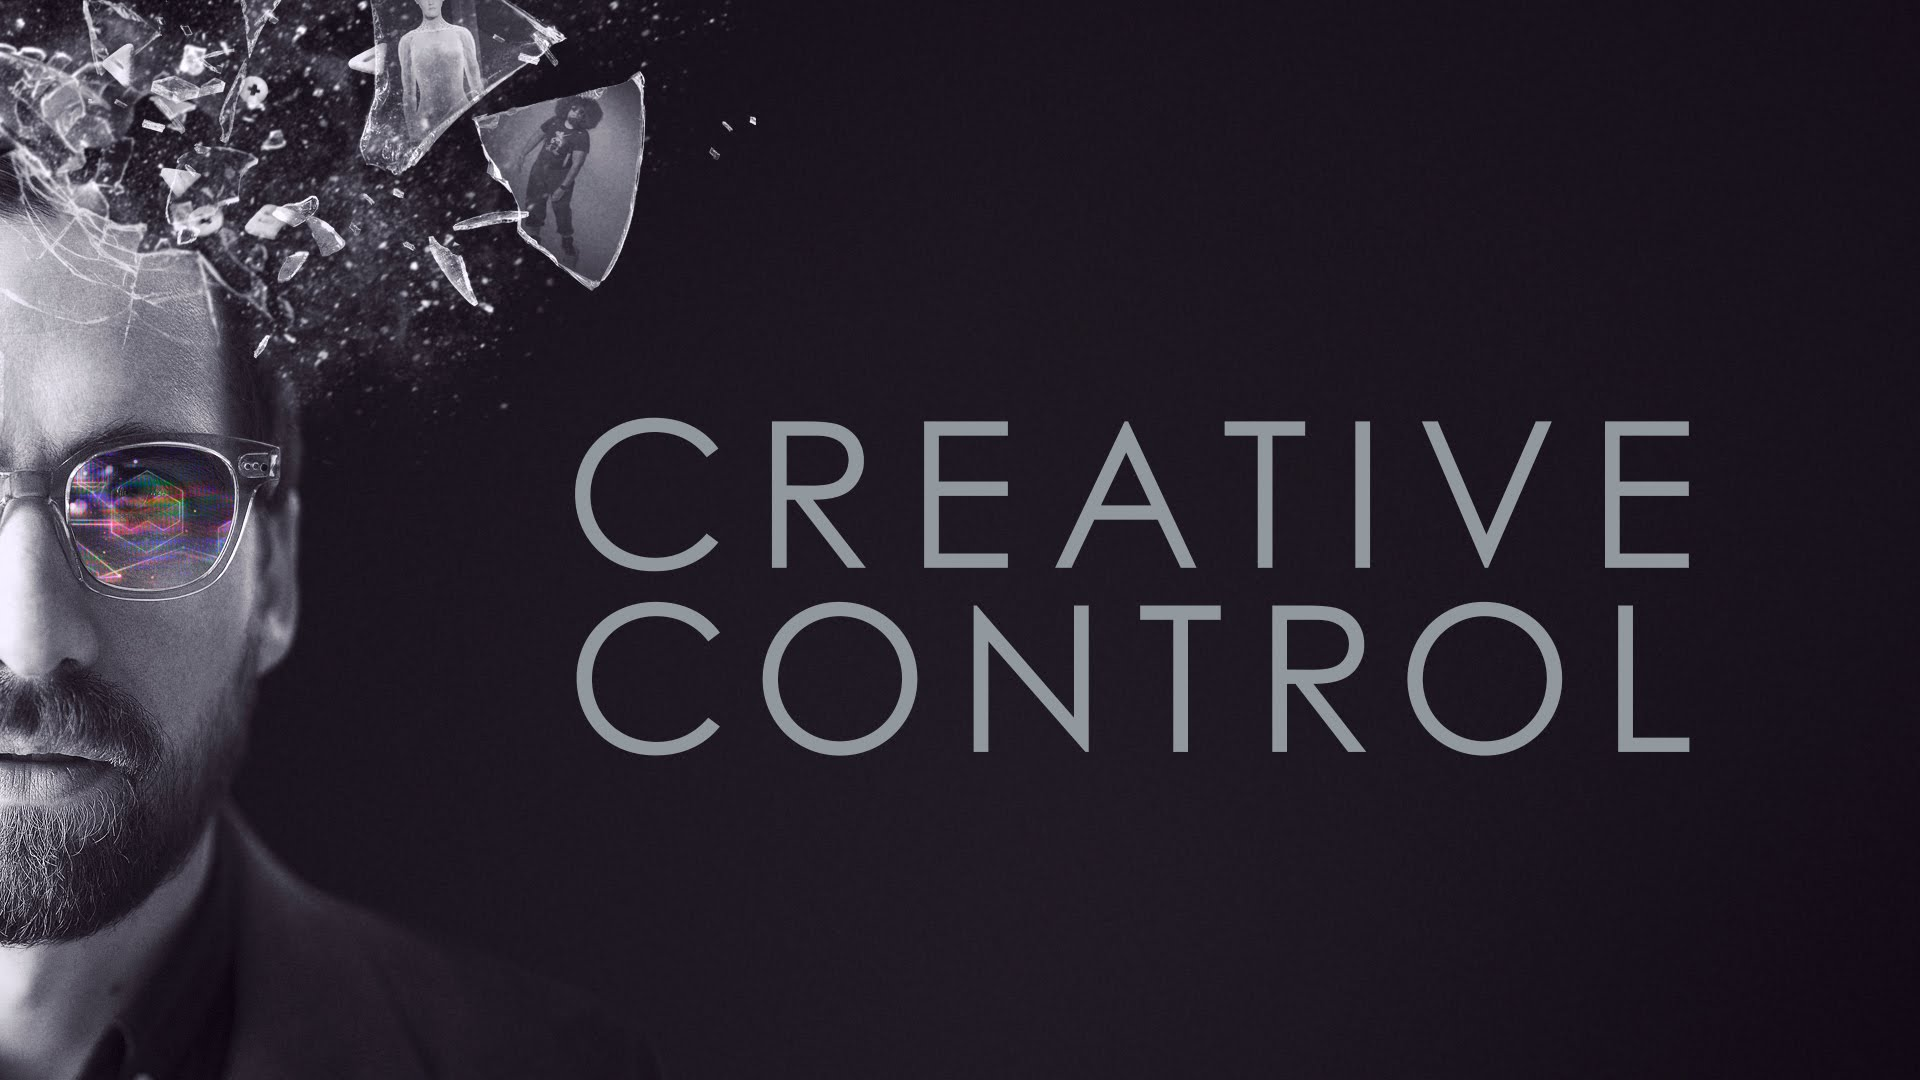 Creative Control, by Benjamin Dickinson